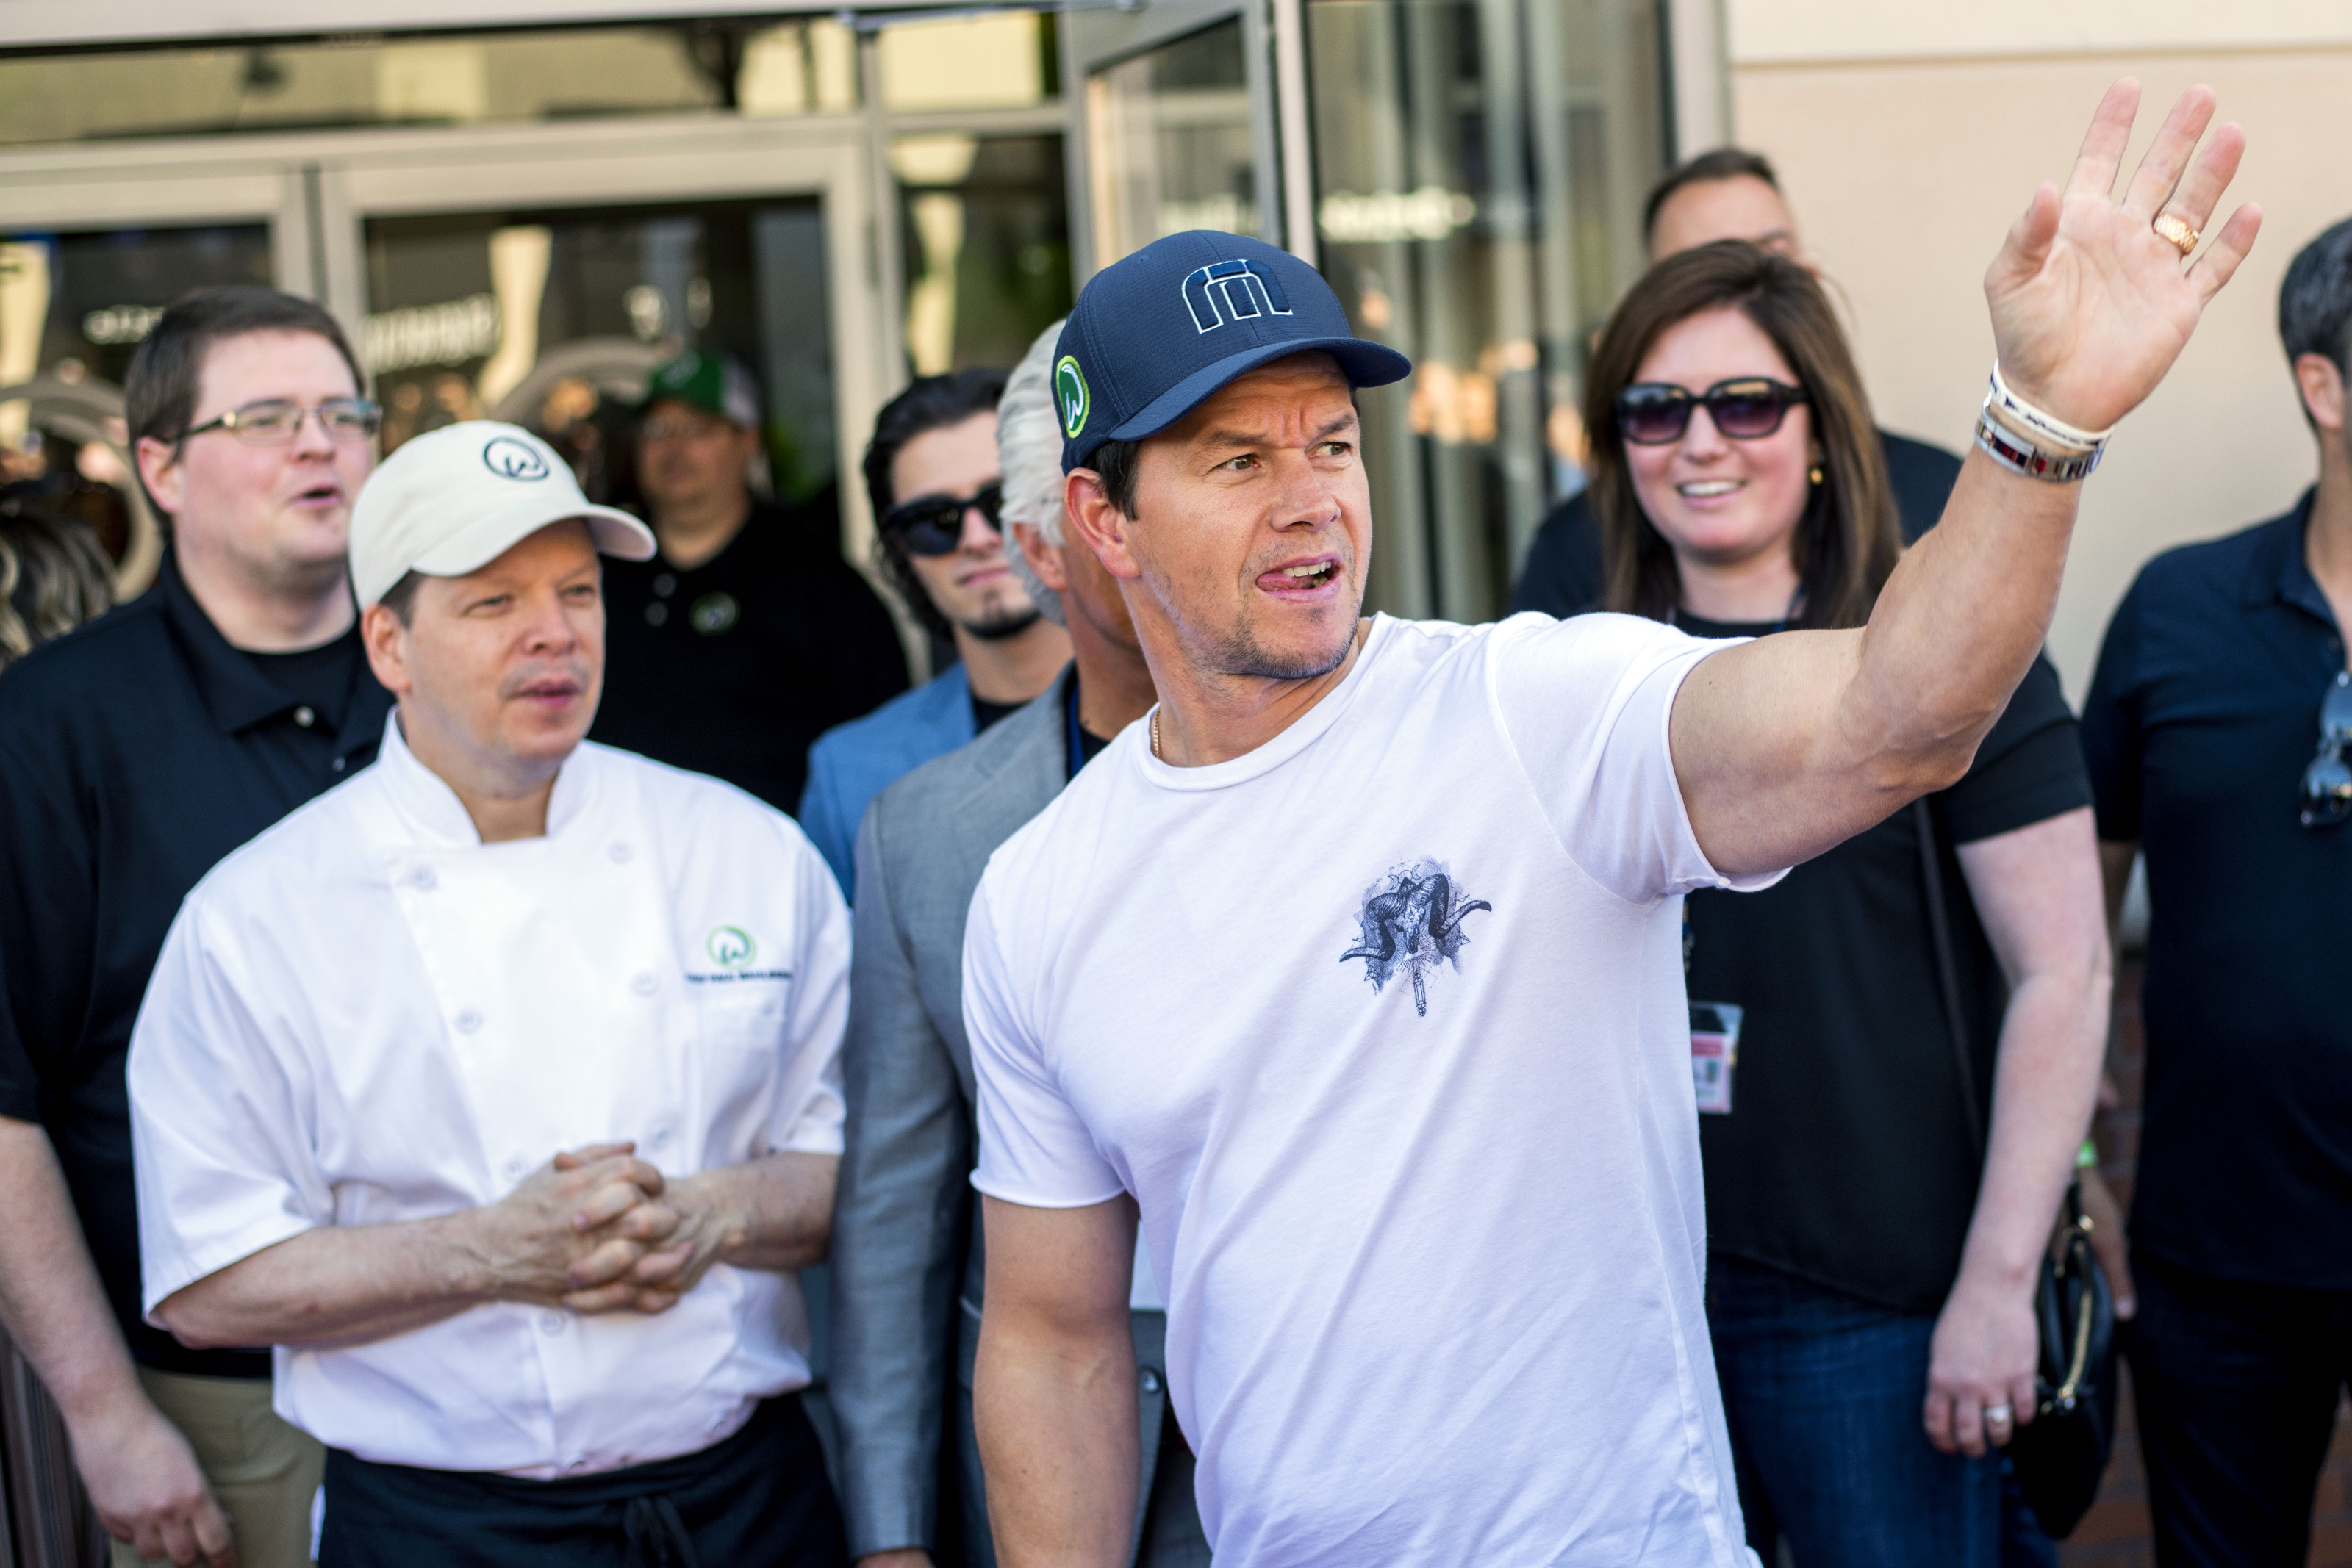 Corset signed by Wahlberg brothers raises $12,500 for breast cancer patients